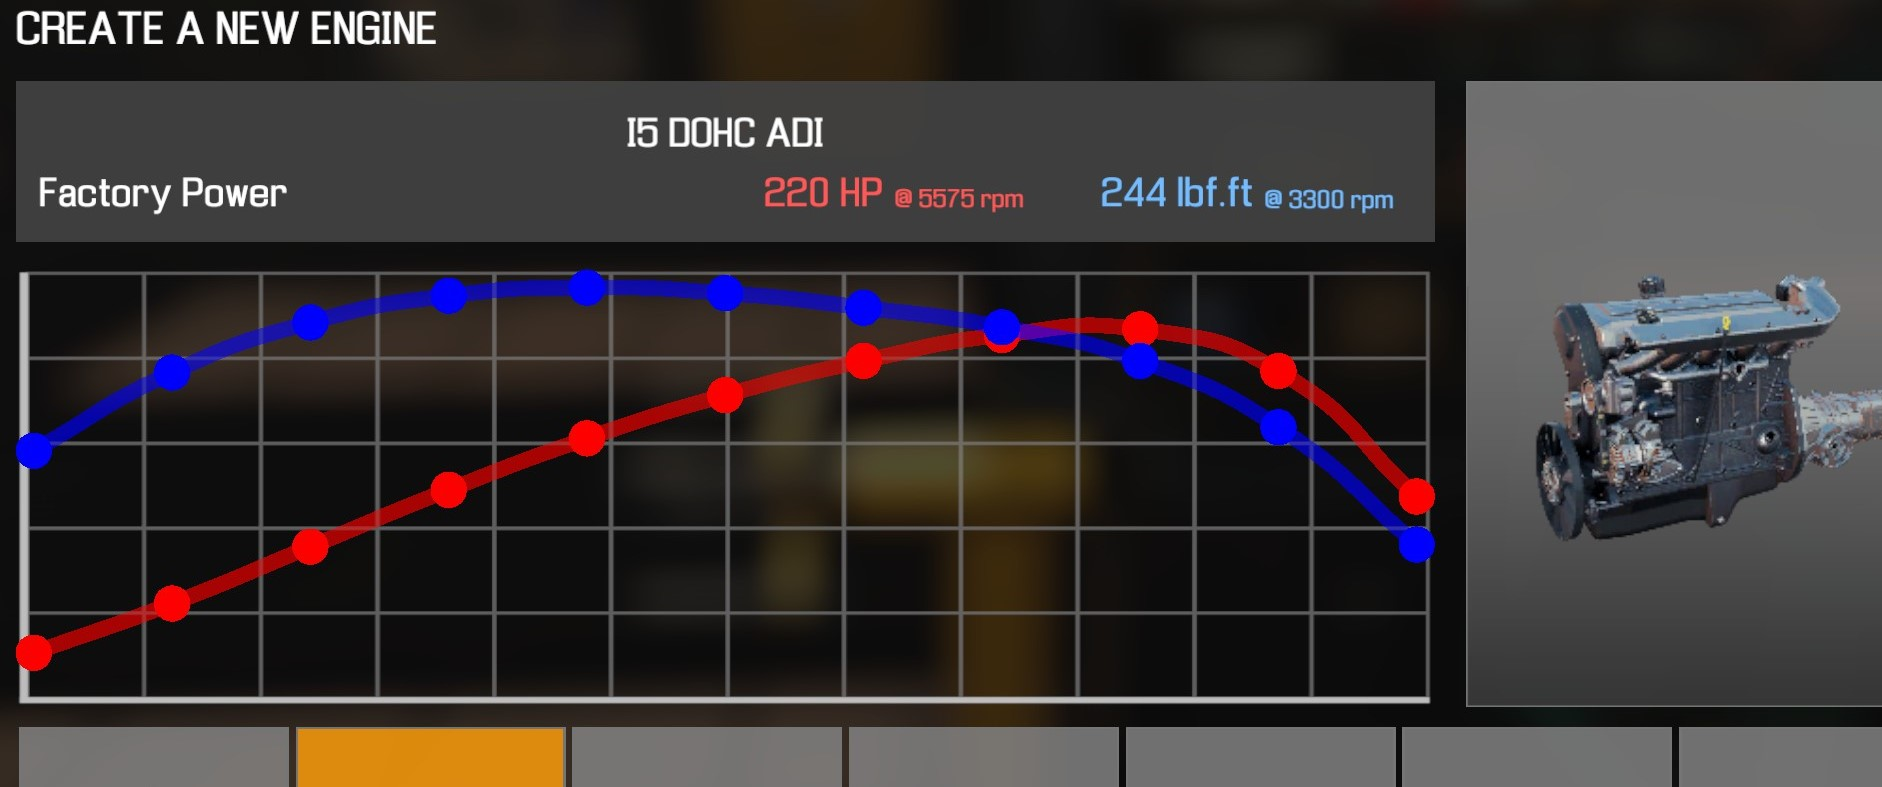 Car Mechanic Simulator 2021 - How to Buy Engine Parts and All Engines in Game Information - I5 DOHC ADI - 12321BF